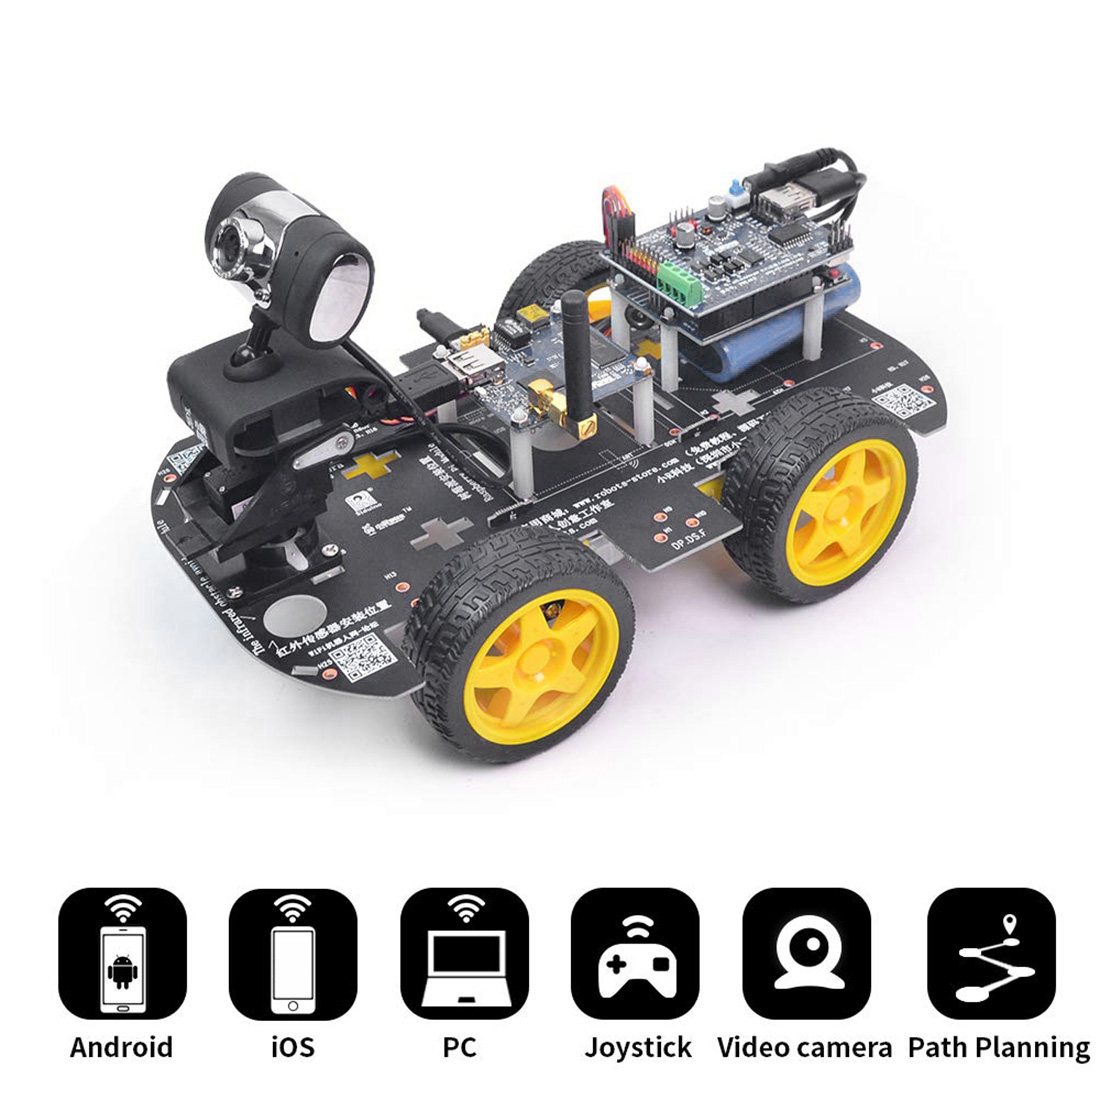 DIY Programmable Robot Car Wifi Steam Educational Programming Car For Raspberry Pi 4 (2G) High Tech Toy-Standard Edition US Plug